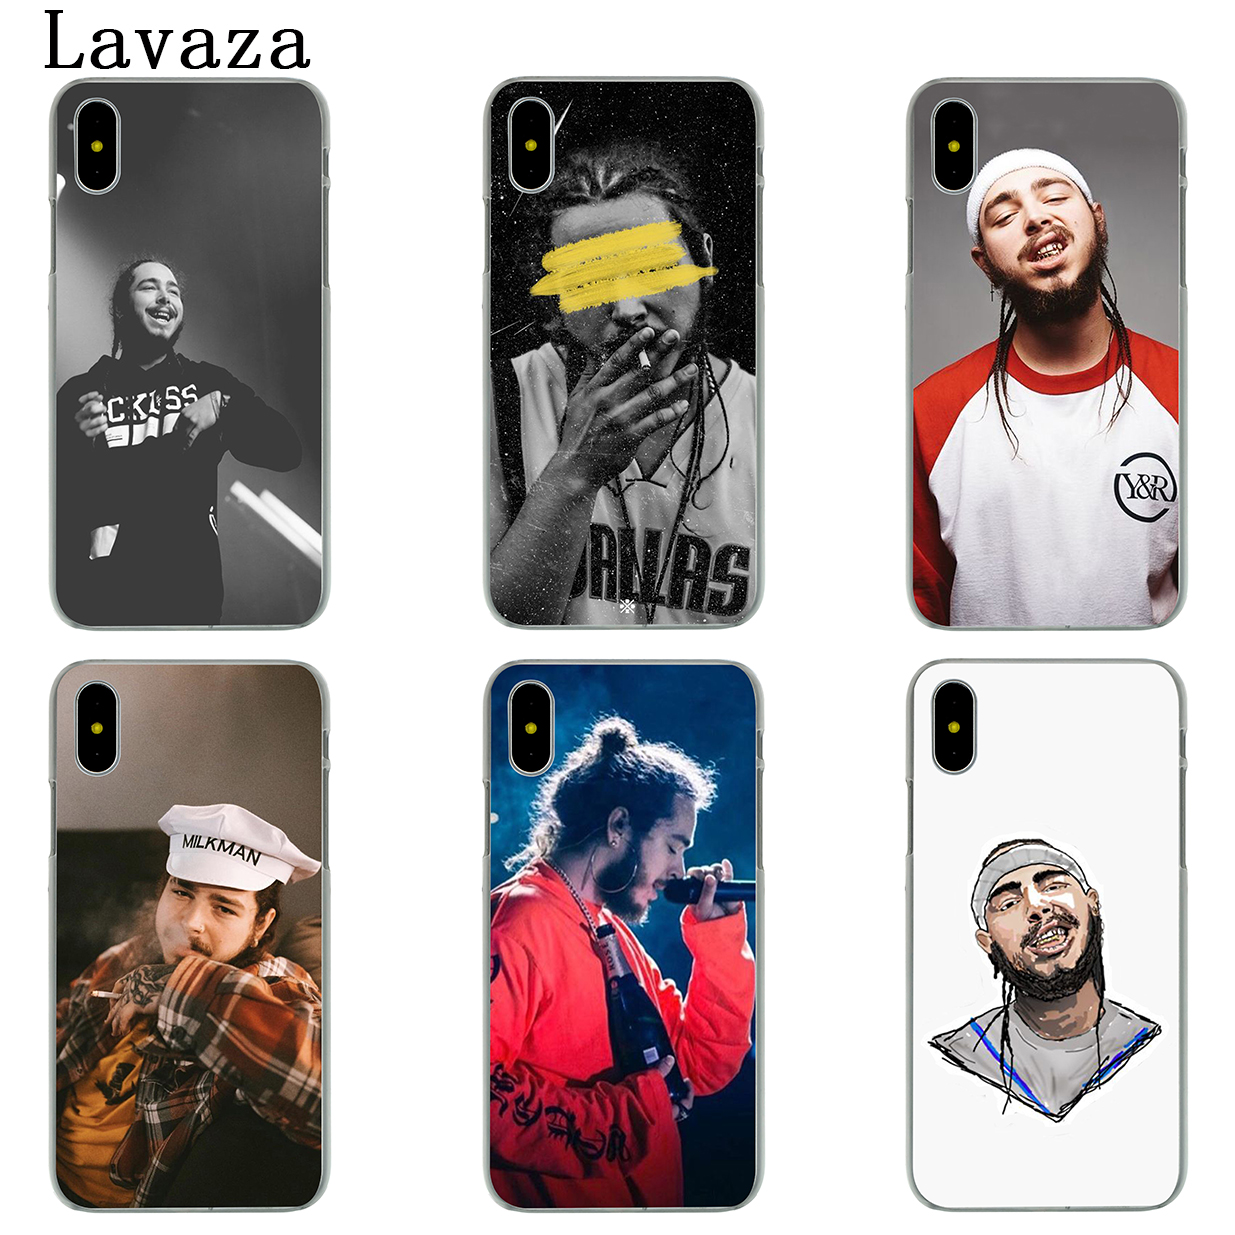 best website 818b5 52205 Lavaza Post Malone Hard Phone Case for Apple iPhone X 10 7 6 6s 8 Plus 4 4S  5 5S SE 5C Coque Shell Cover-in Half-wrapped Case from Cellphones & ...